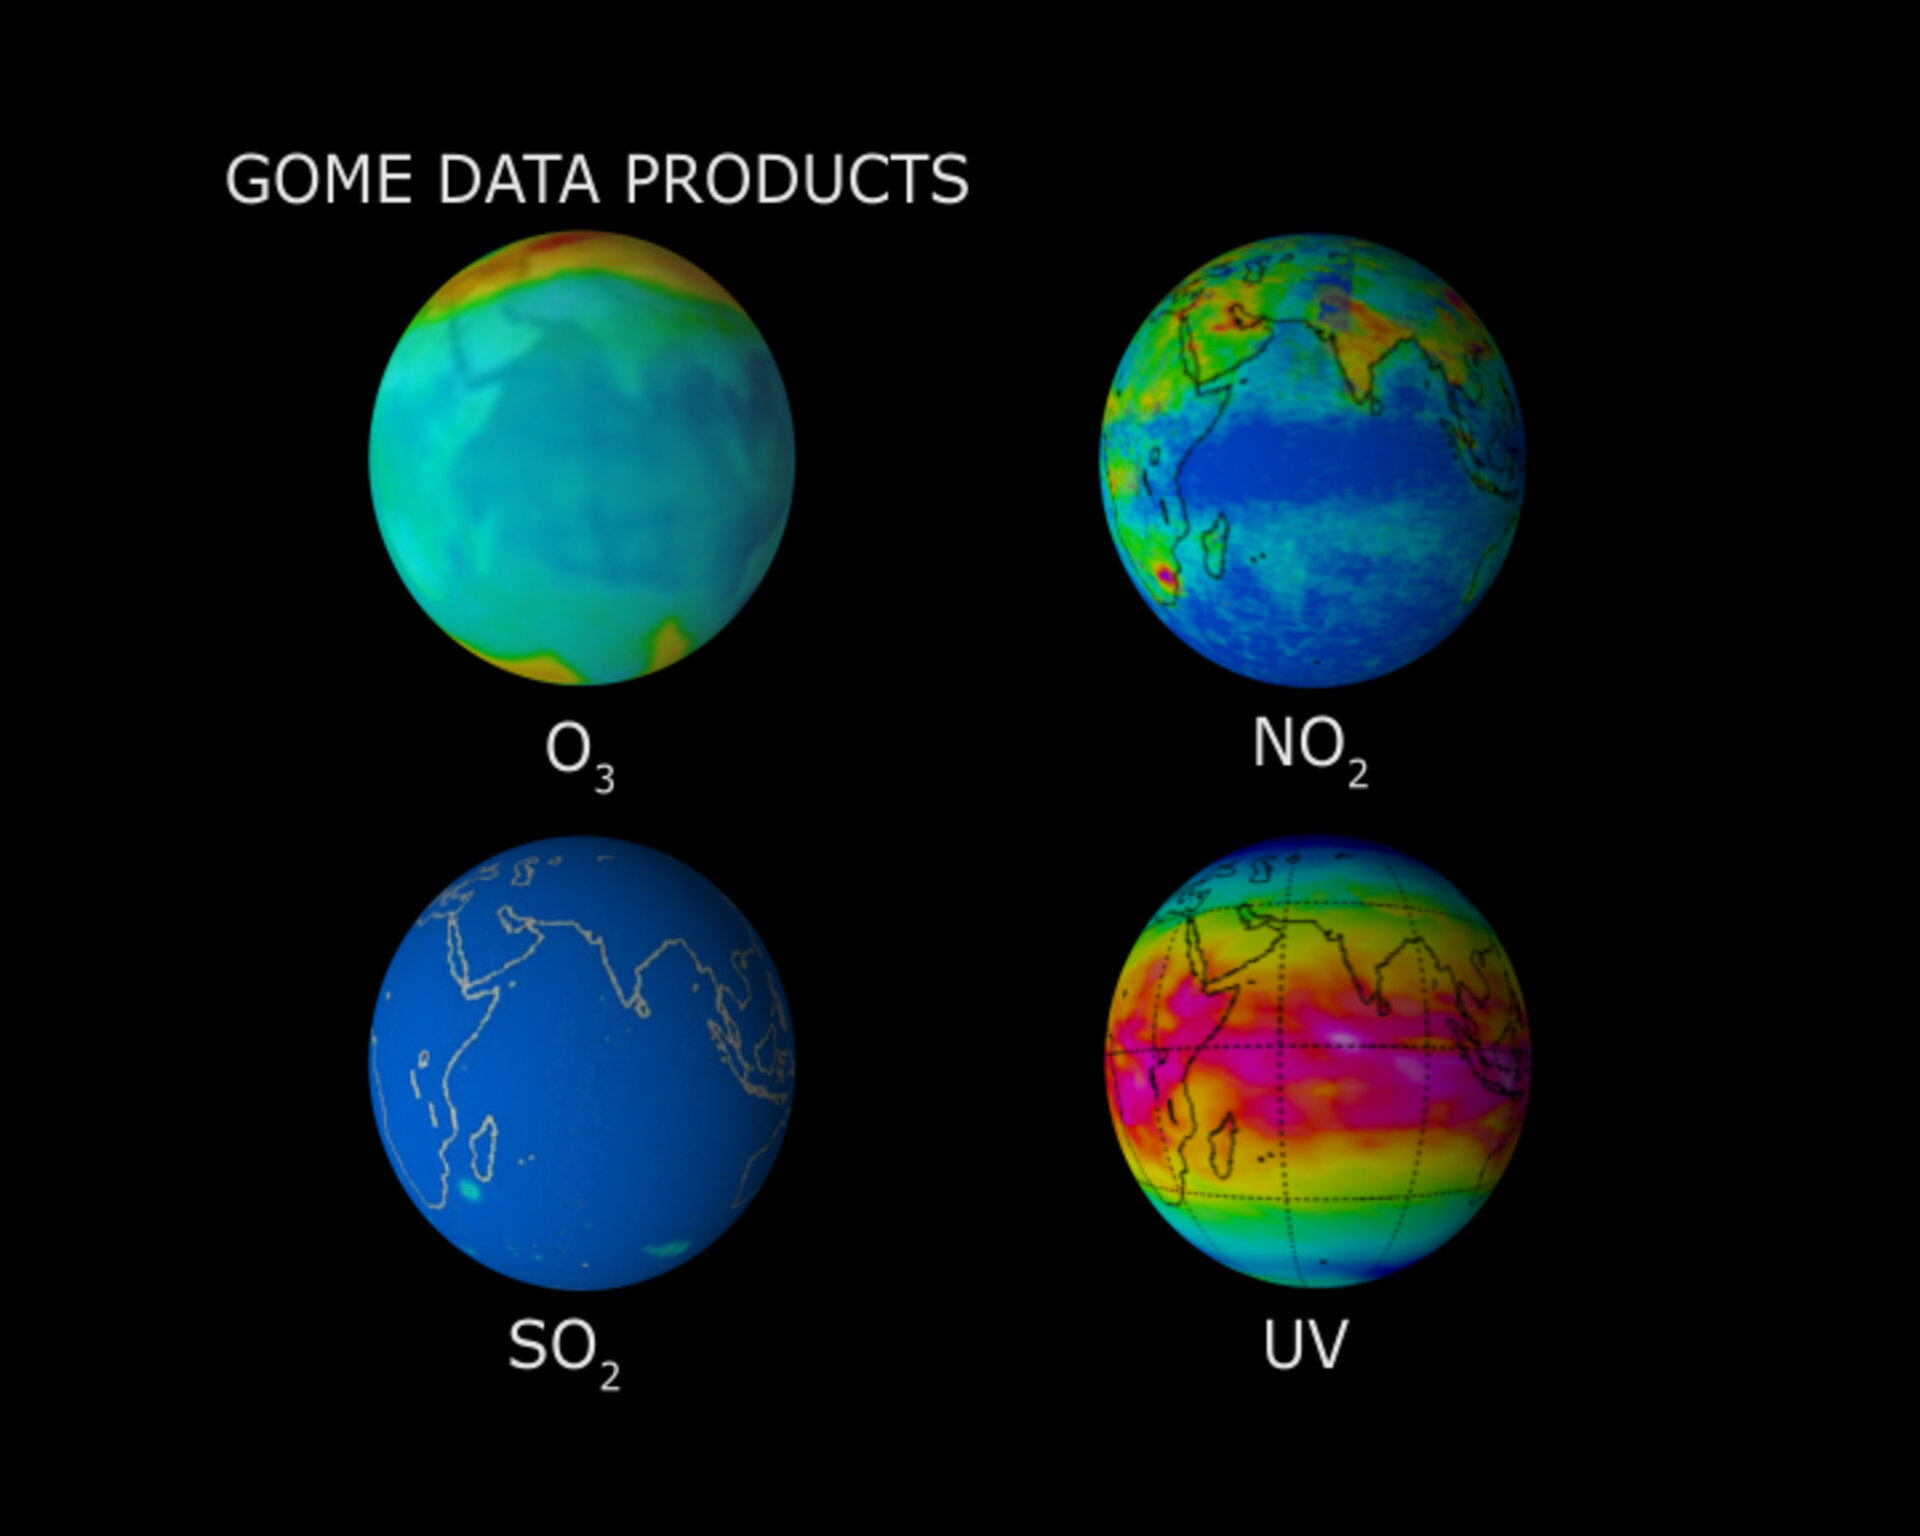 GOME-2 data products